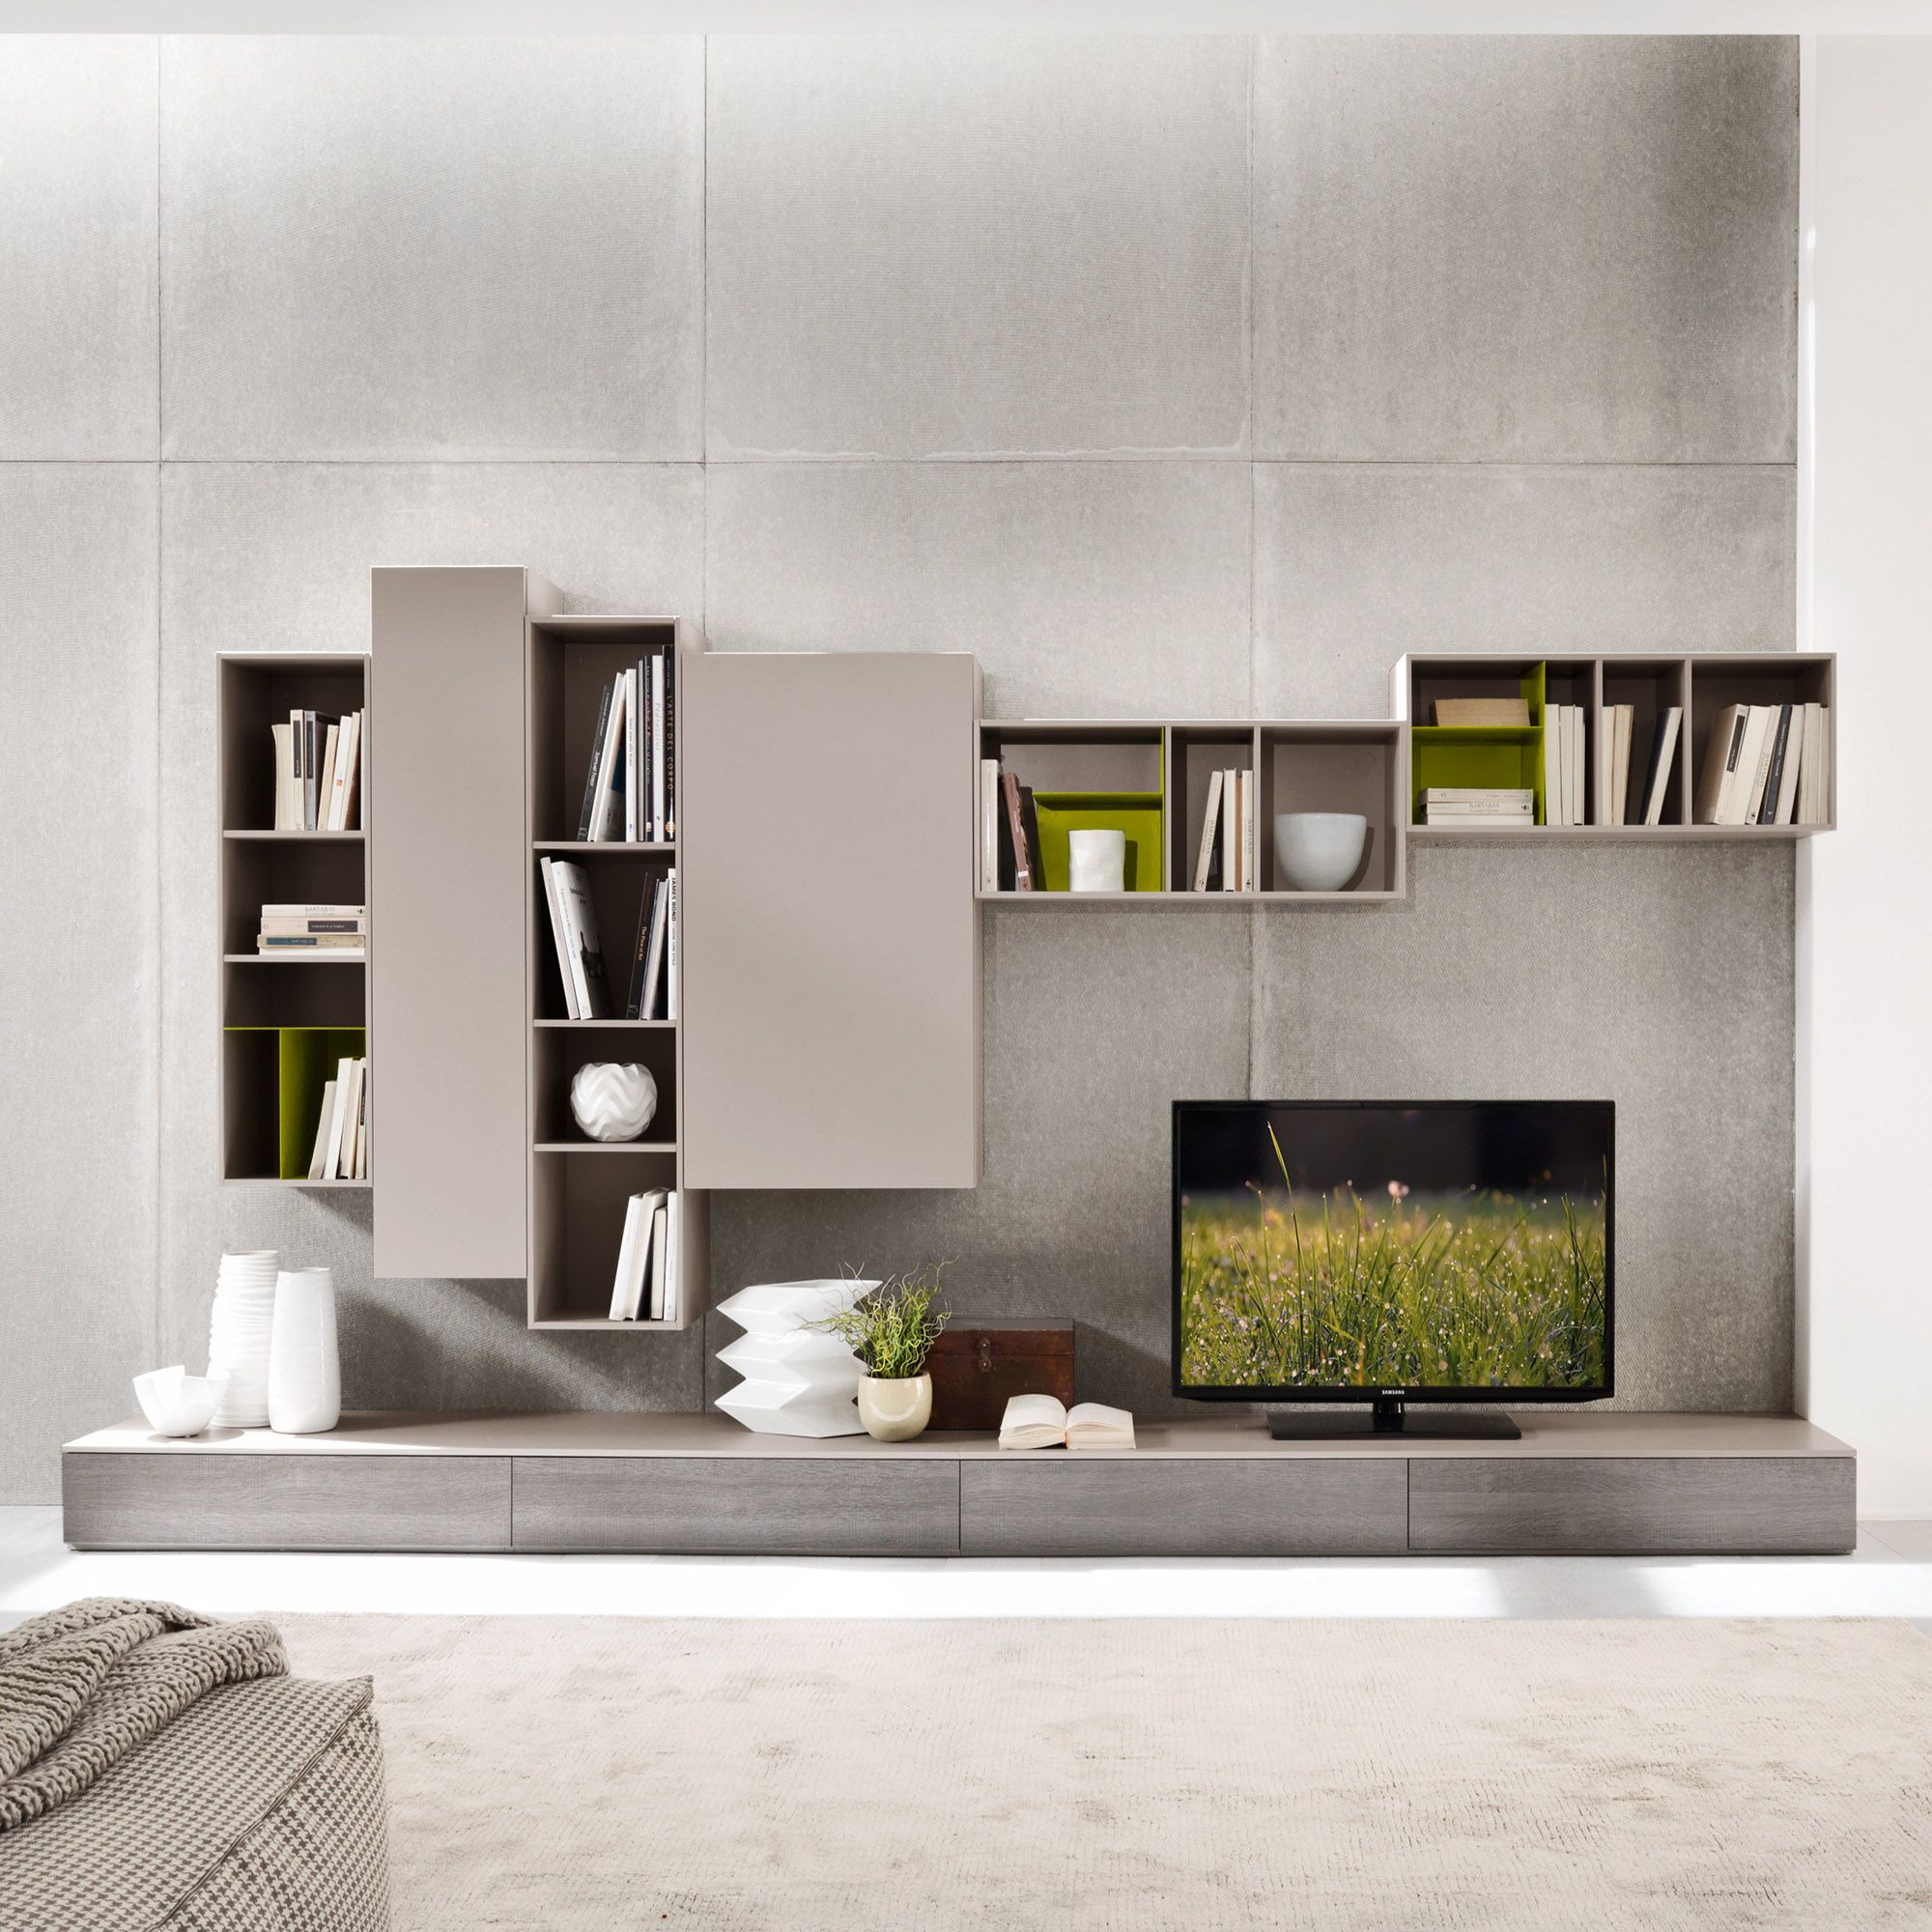 modern italian tv unit composition 09 by siluetto in 2020 on incredible tv wall design ideas for living room decor layouts of tv models id=14674